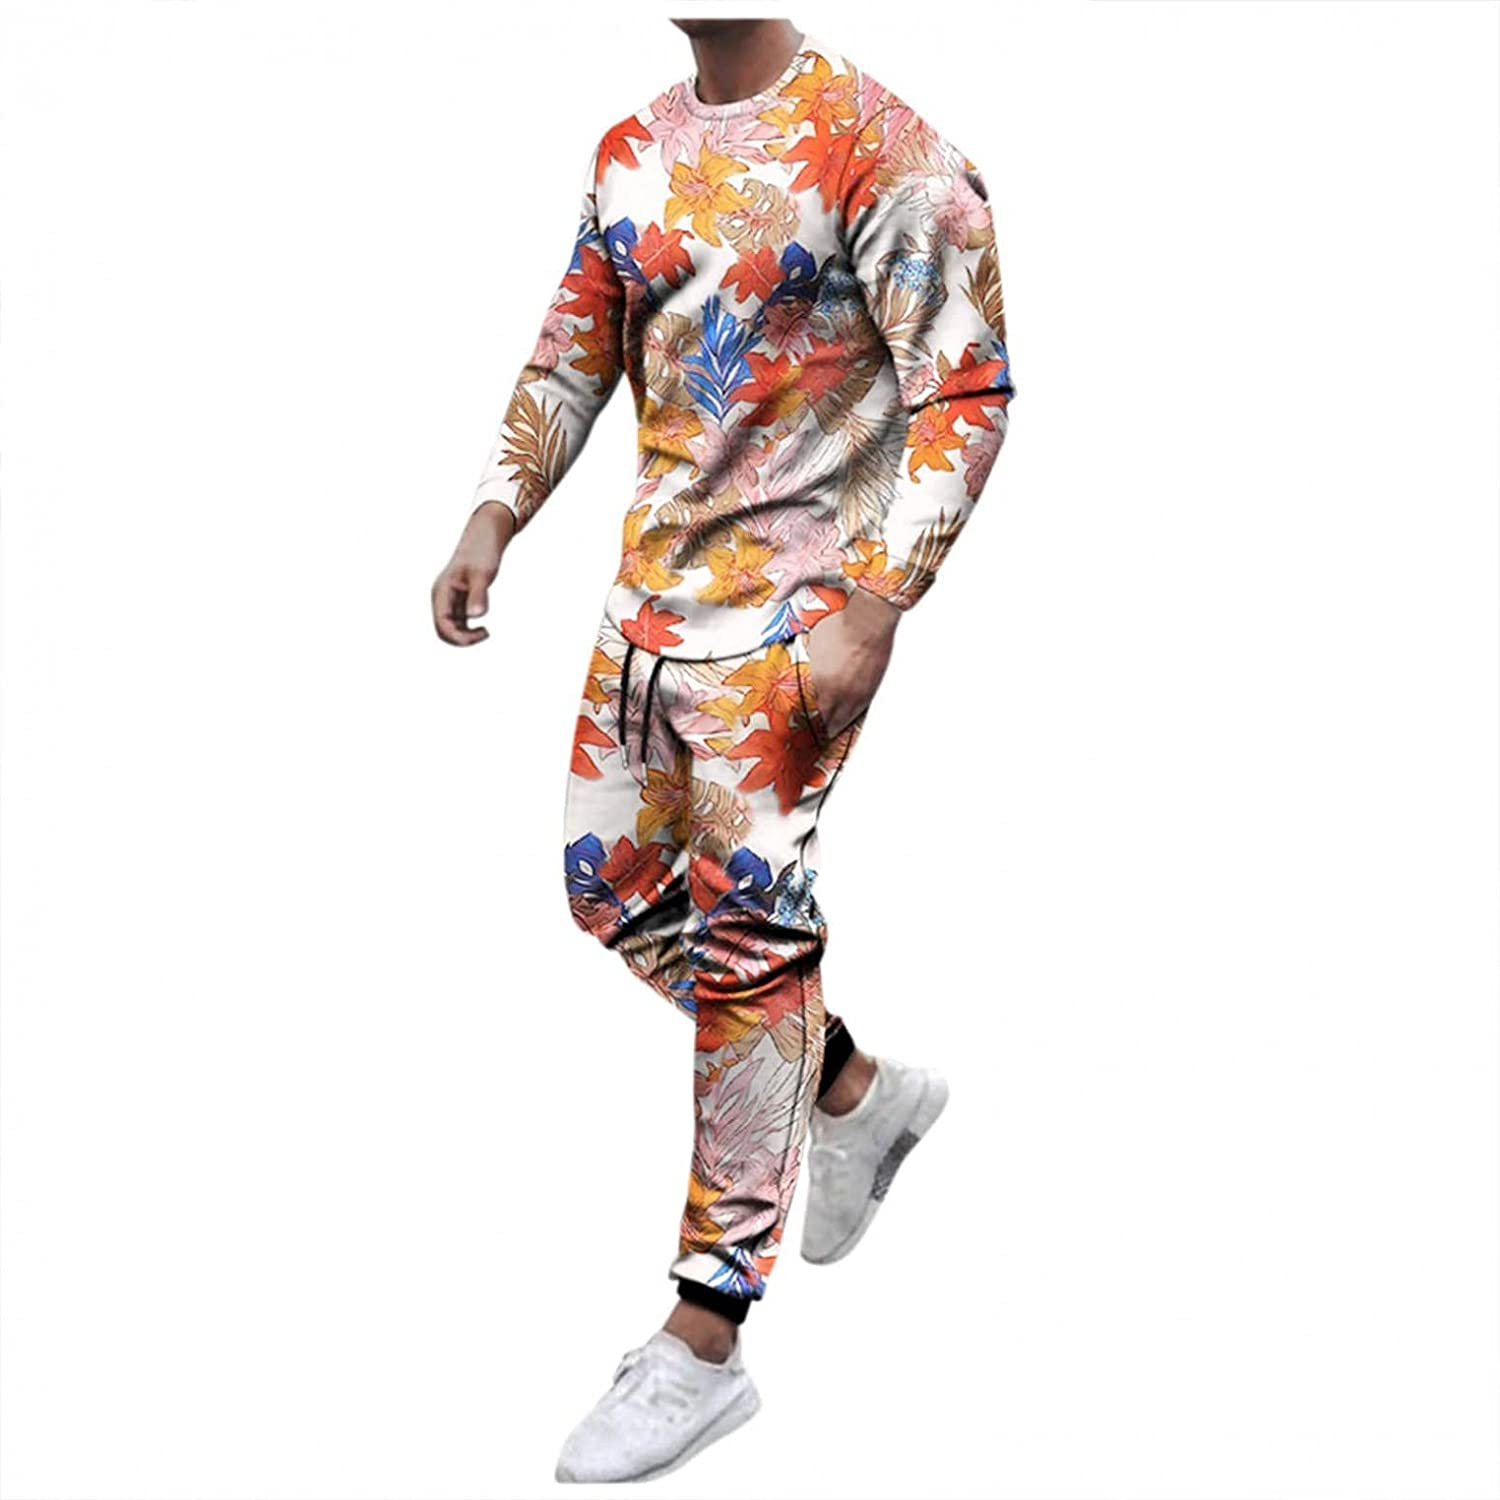 JSPOYOU Men's Printed Sweatsuits 2 Piece Outfit Long Sleeve Sweatshirt and Sweatpants Set Hipster Slim Fit Activewear